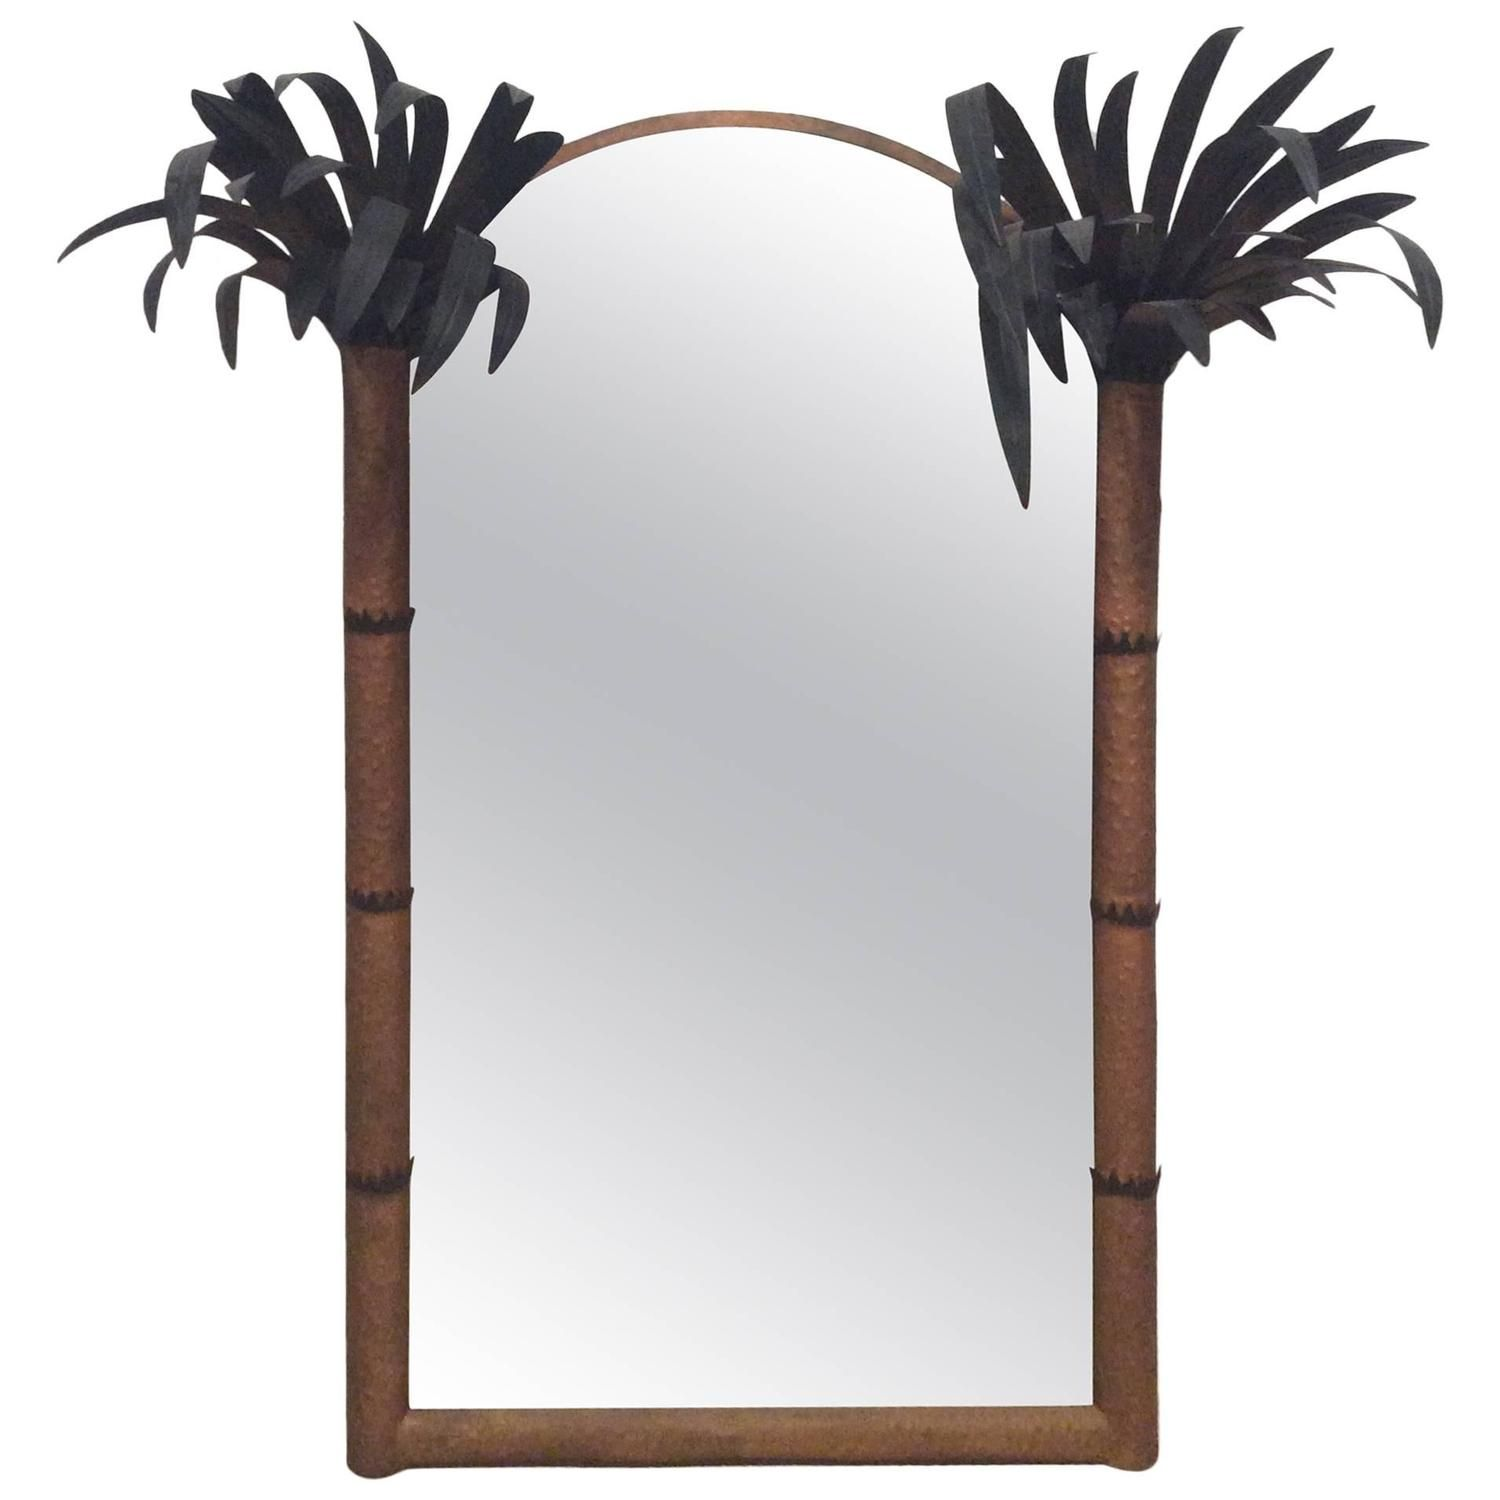 Top 25+ best Tropical wall mirrors ideas on Pinterest | Tropical bathroom mirrors, Wall mounted ...